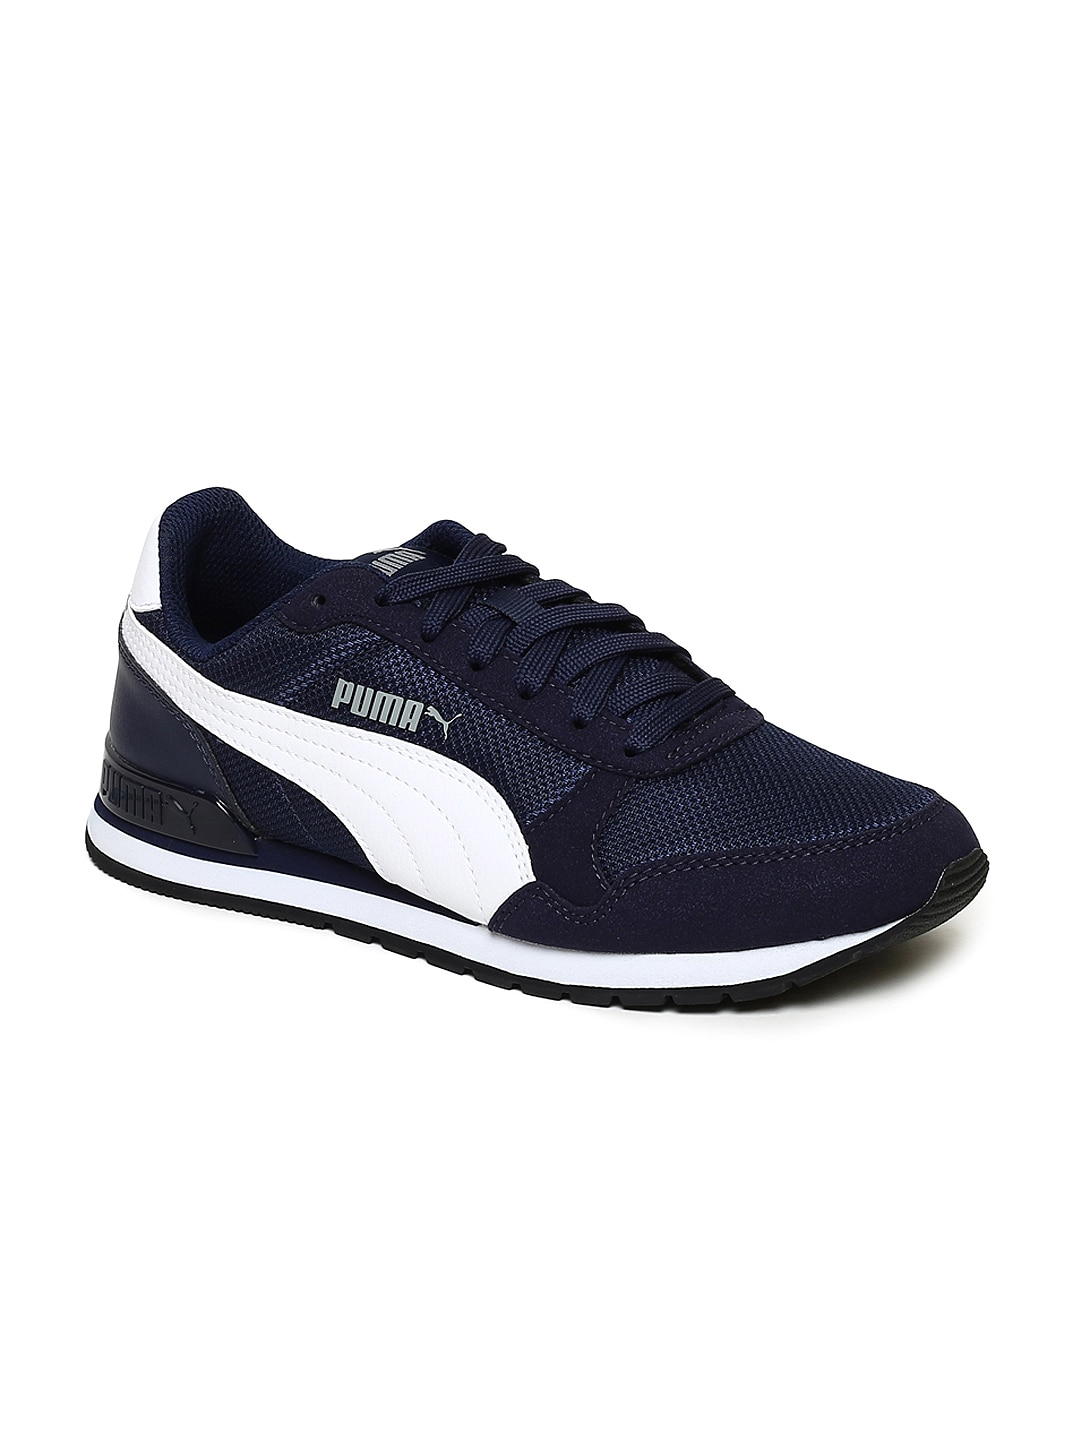 Puma Jr Navy St Runner V2 Mesh Blue Kids Shoes Running H9YE2IDeWb